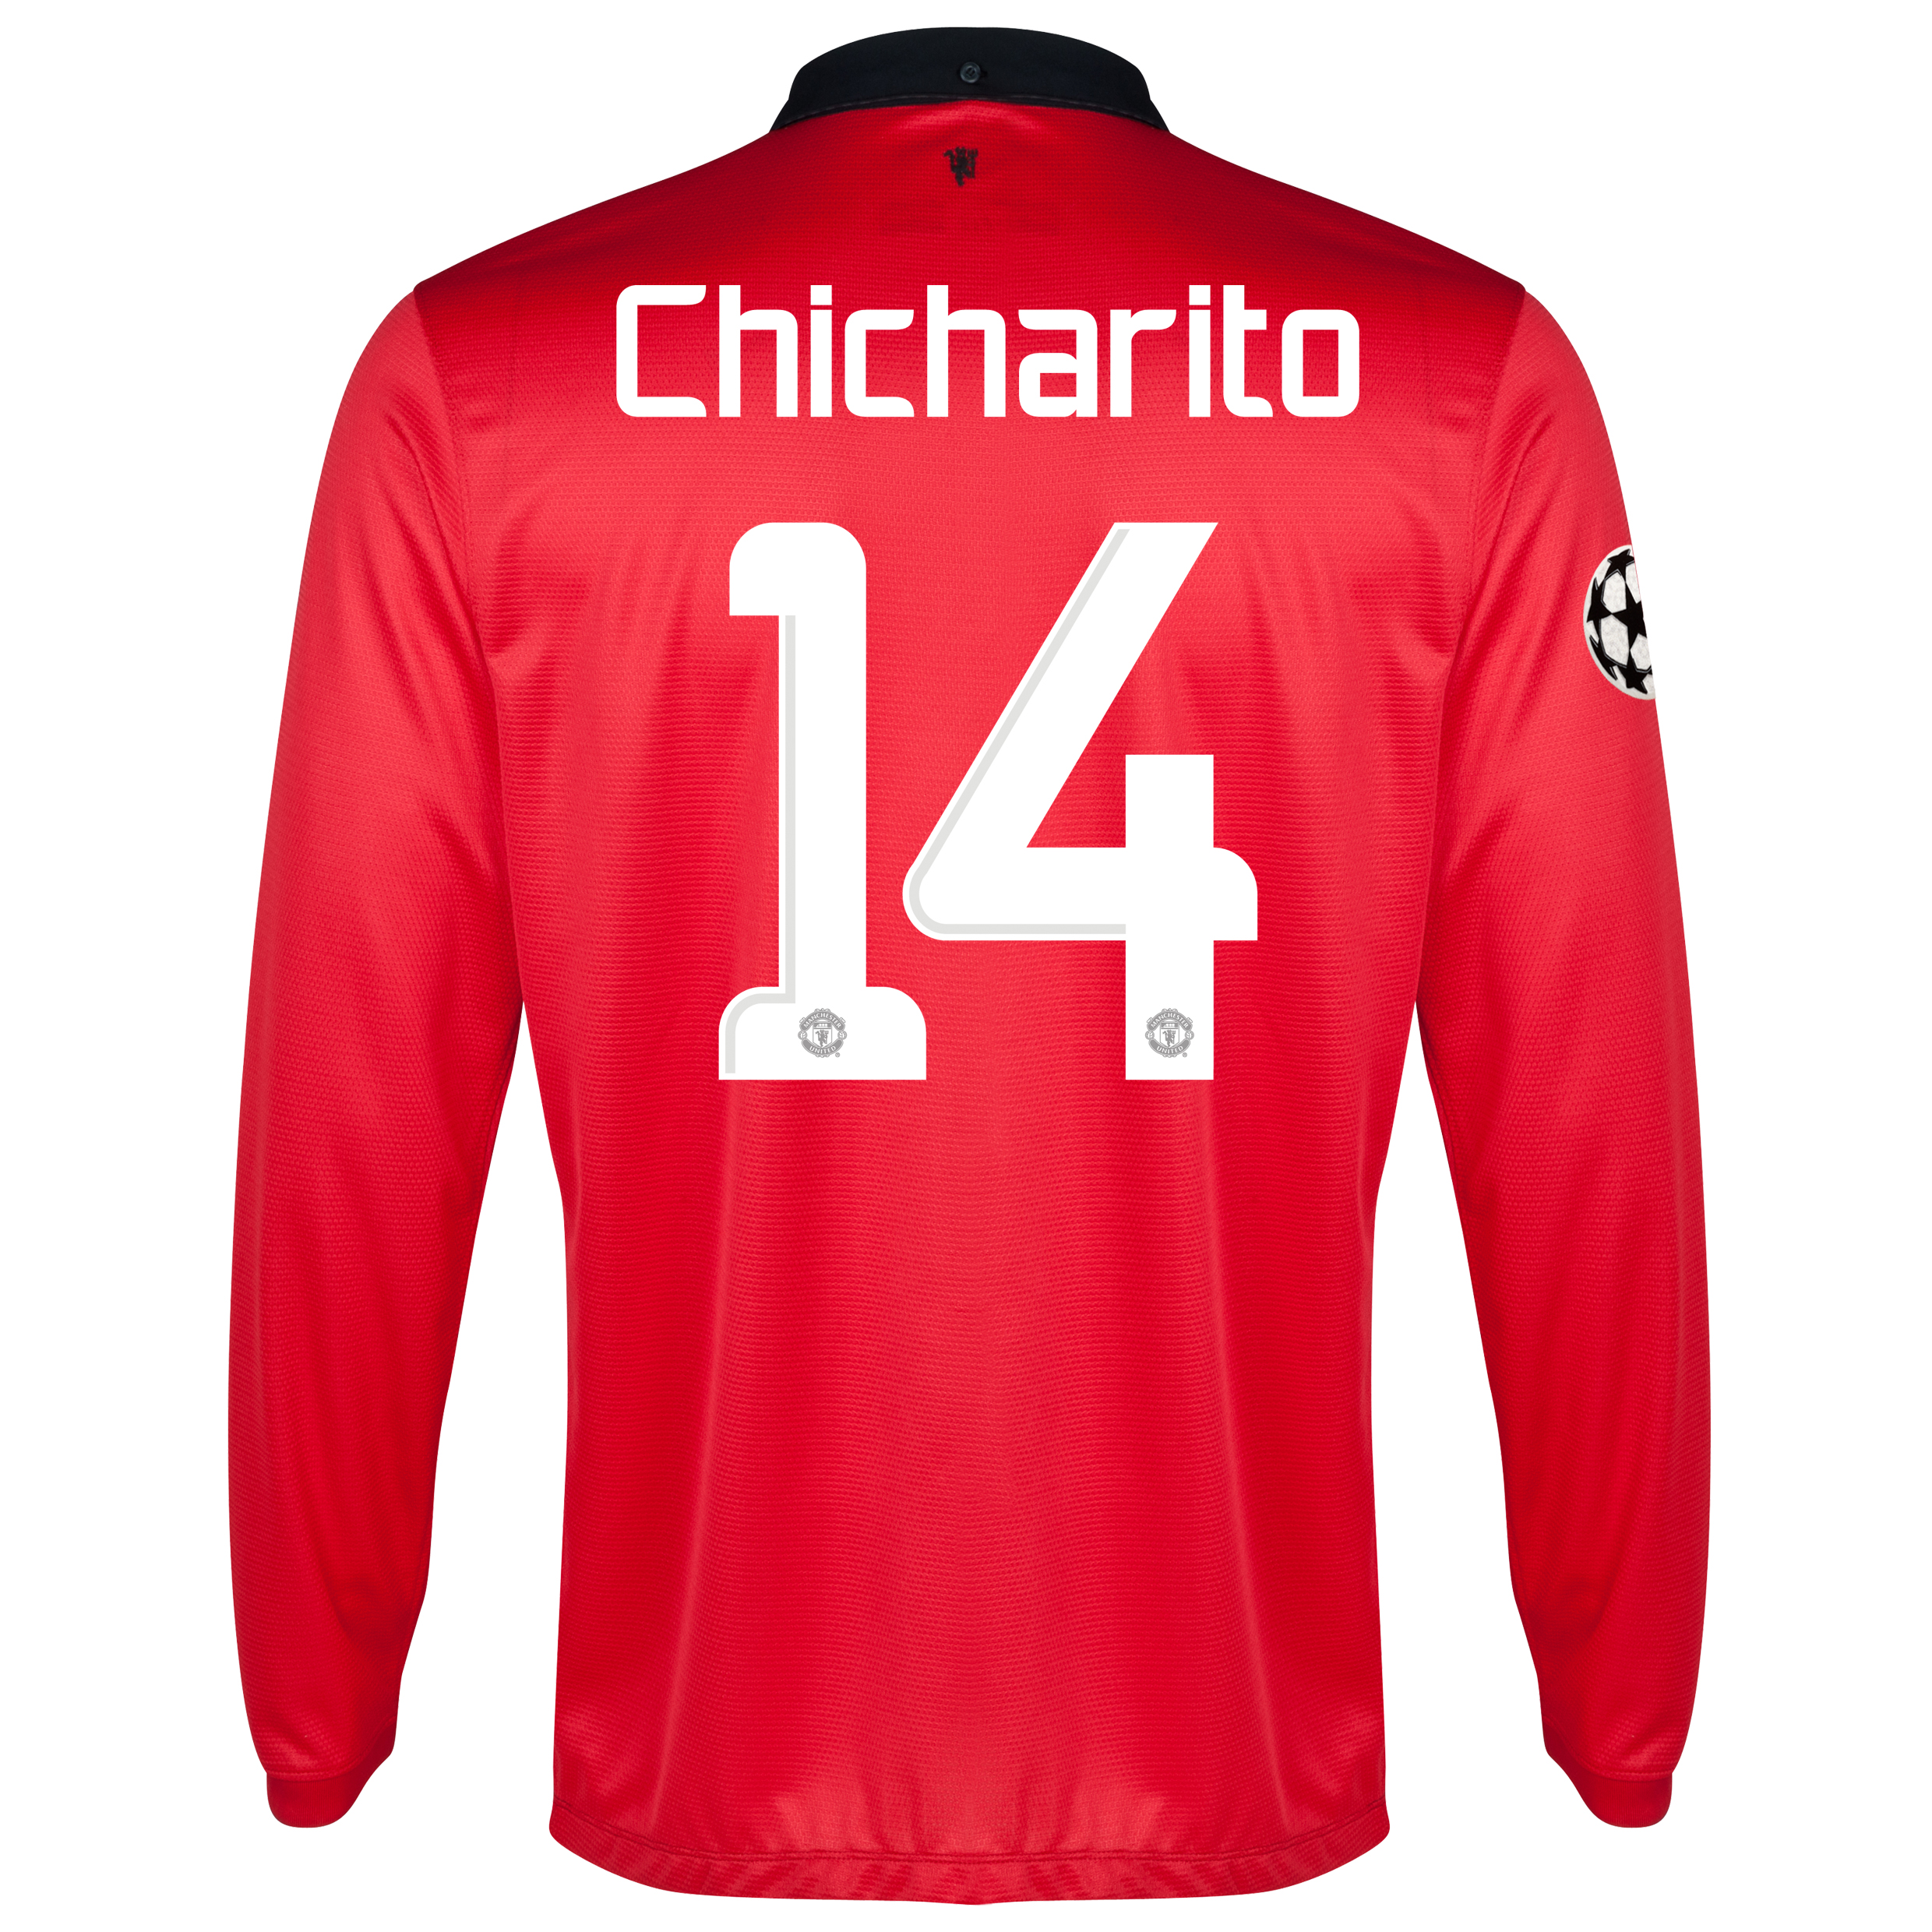 Manchester United UEFA Champions League Home Shirt 2013/14 - Long Sleeved with Chicharito 14 printing